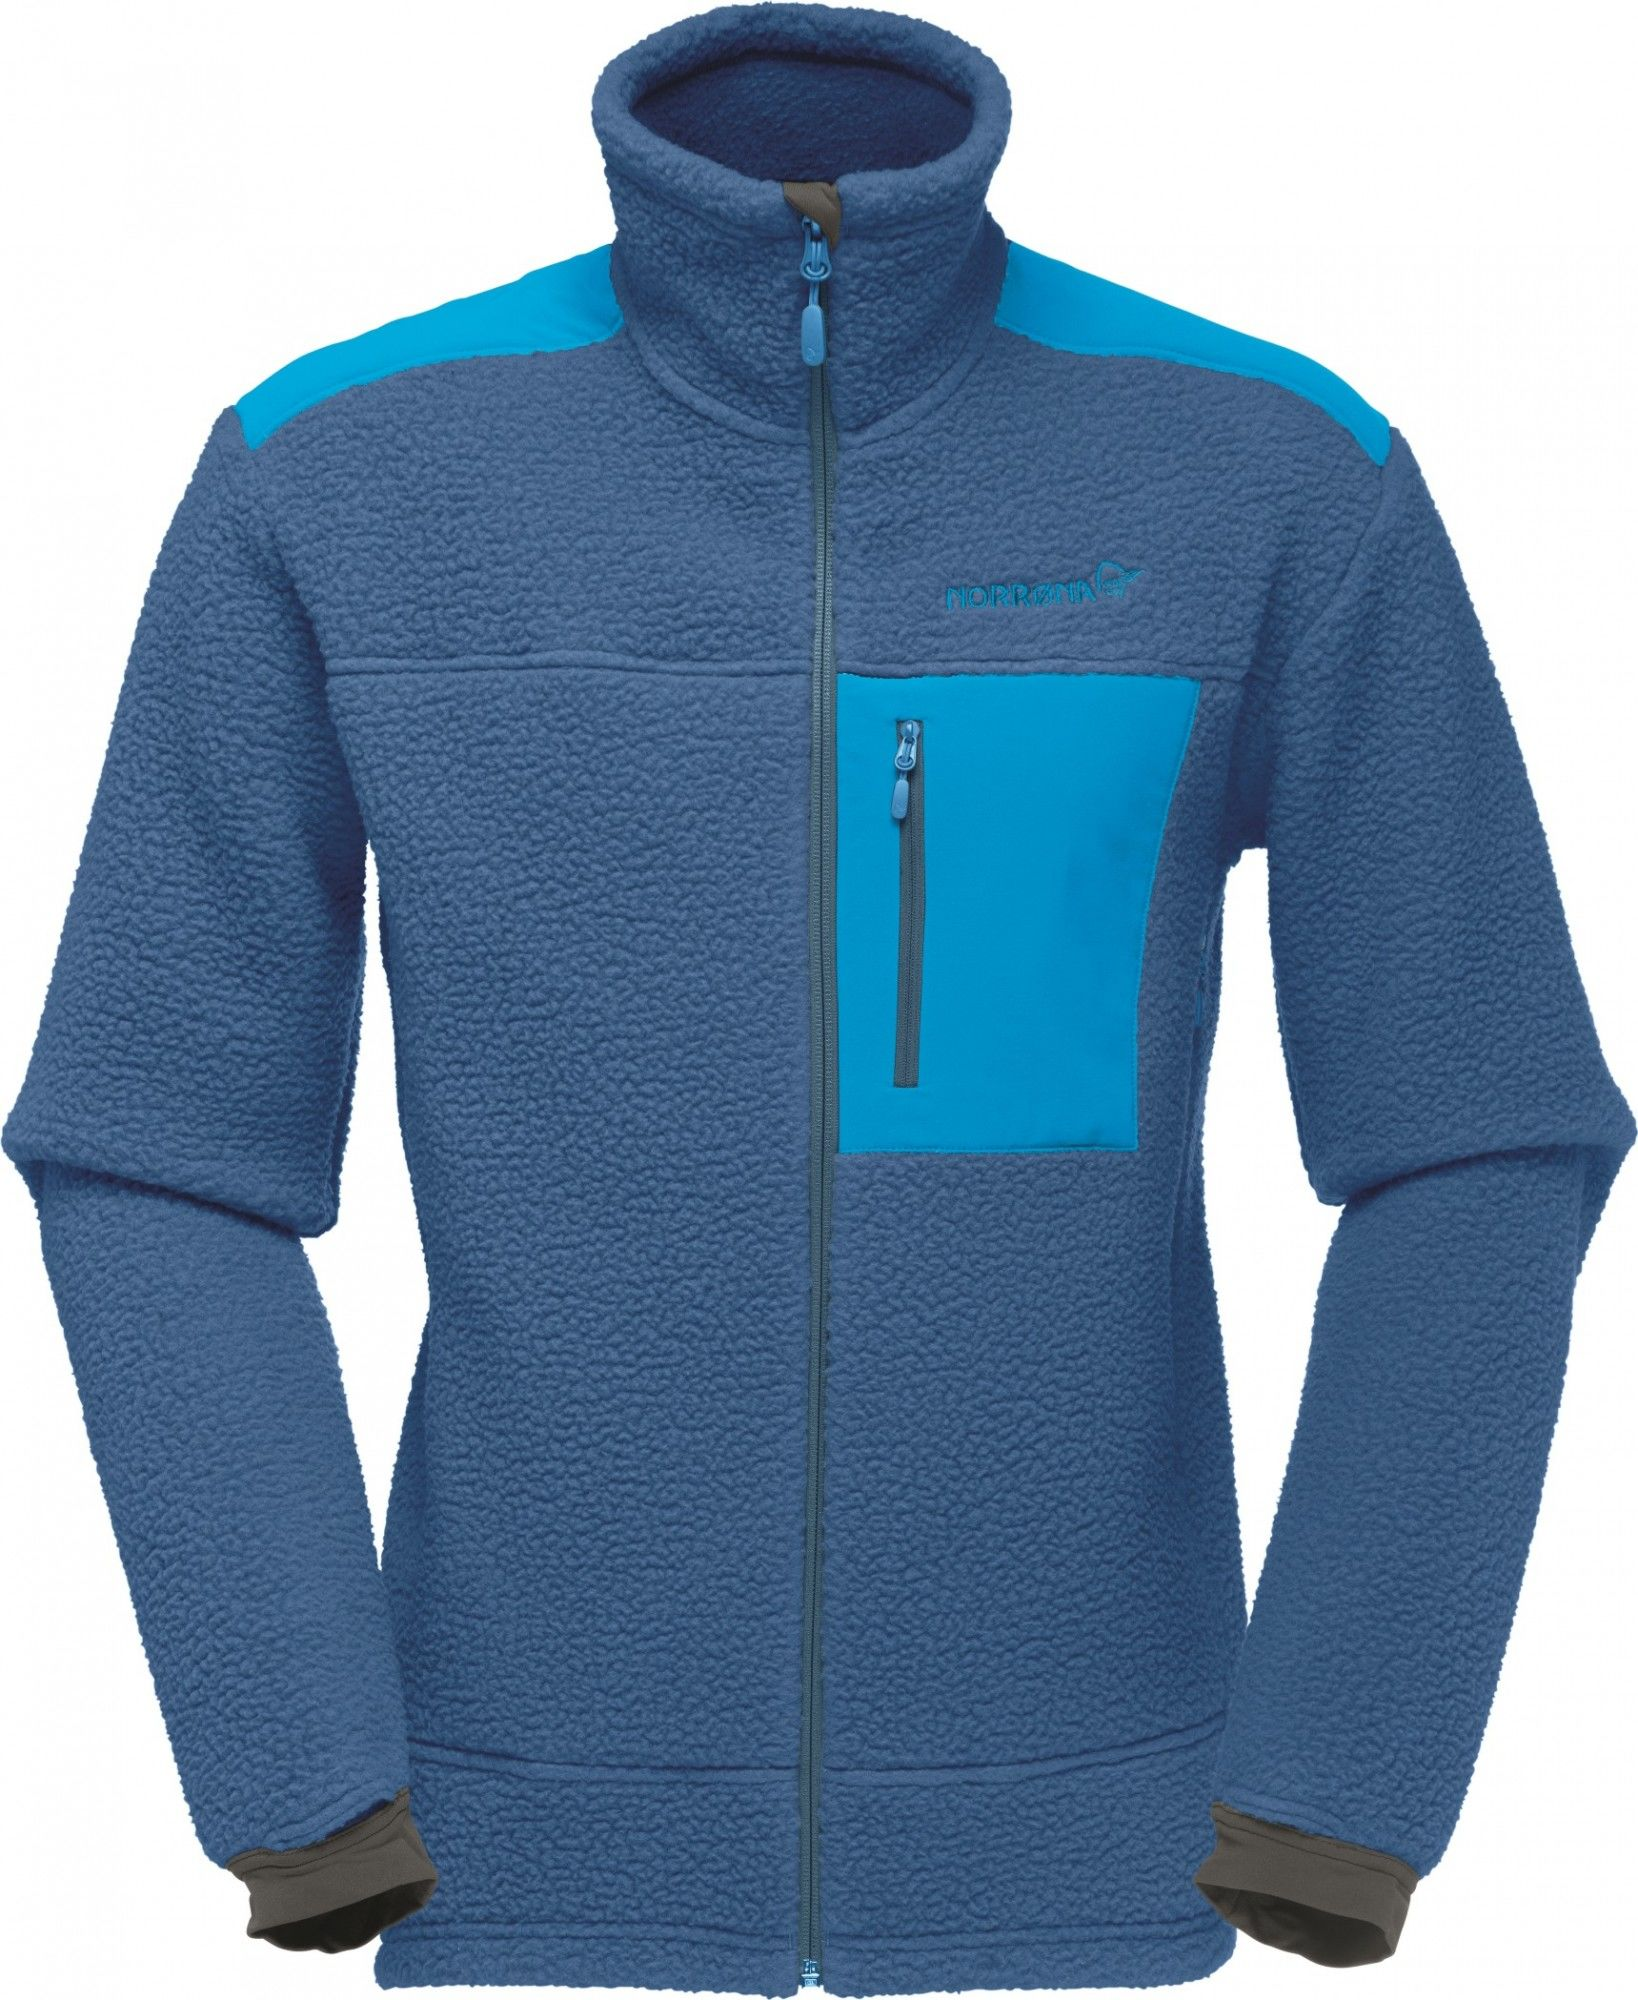 Norrona Trollveggen Thermal Pro Jacket Blau, Male Polartec® Fleecejacke, M